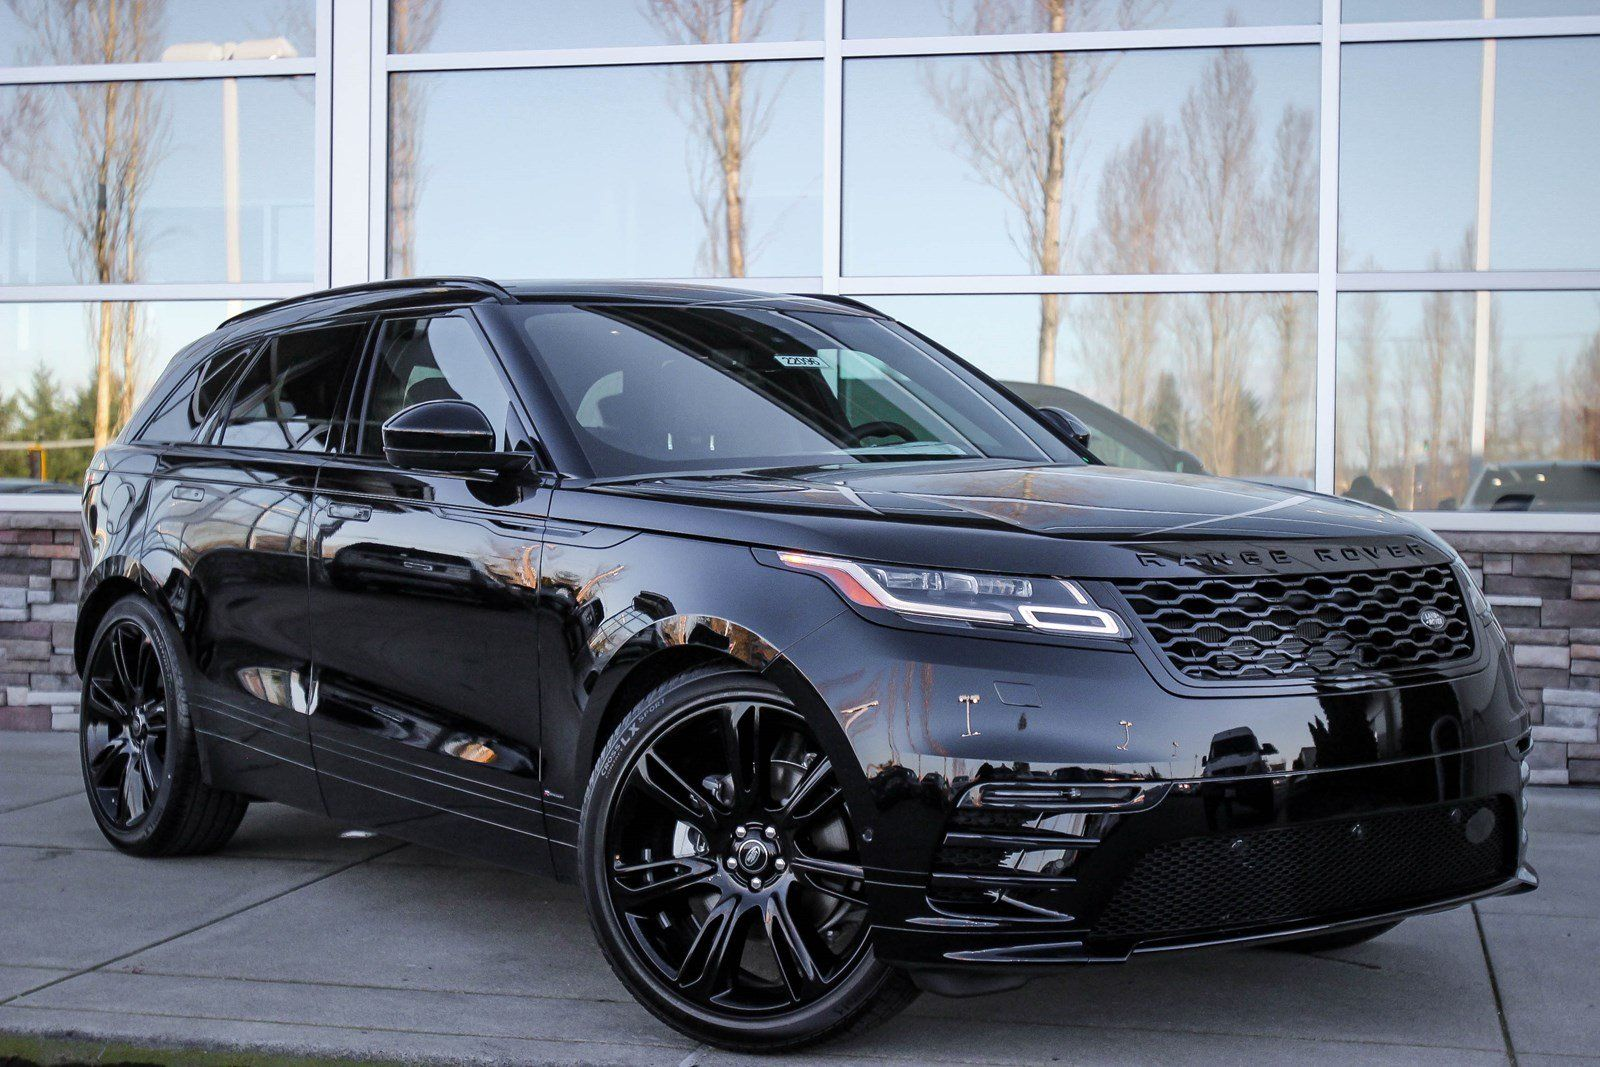 Range Rover Seattle >> 149 New Suvs In Stock Edmonds Cars Range Rover Range